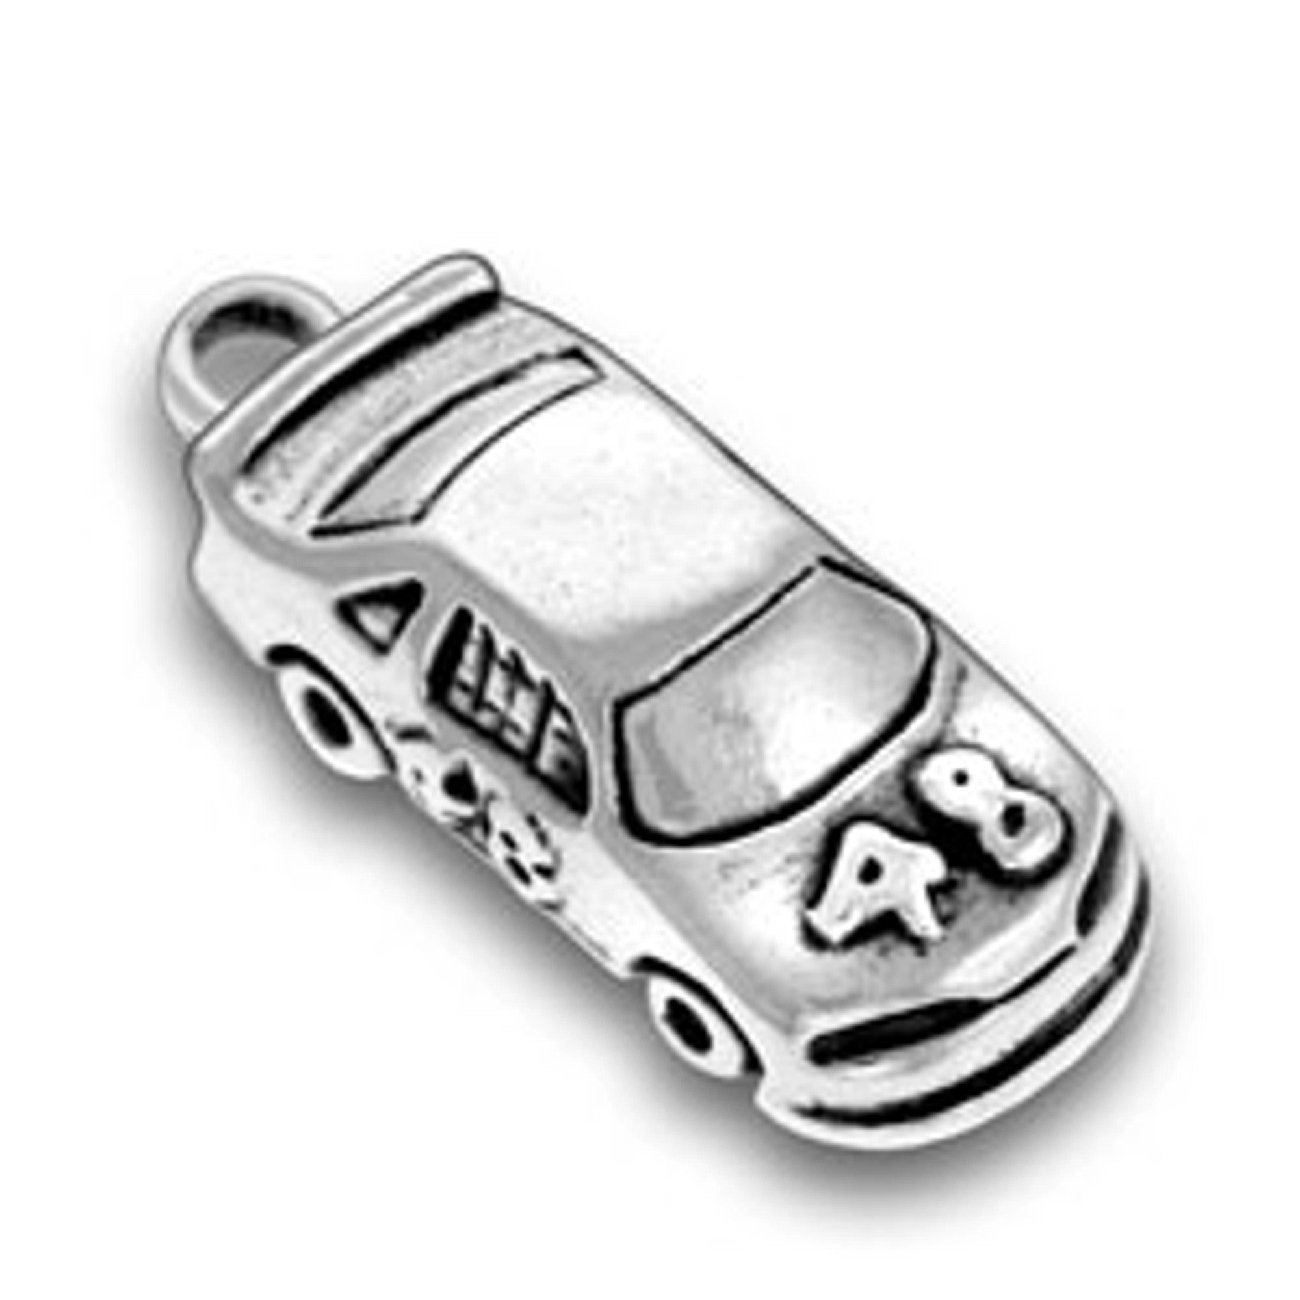 Sterling Silver Girls .8mm Box Chain 3D Jimmie Johnson #48 Nascar Race Car Pendant Necklace